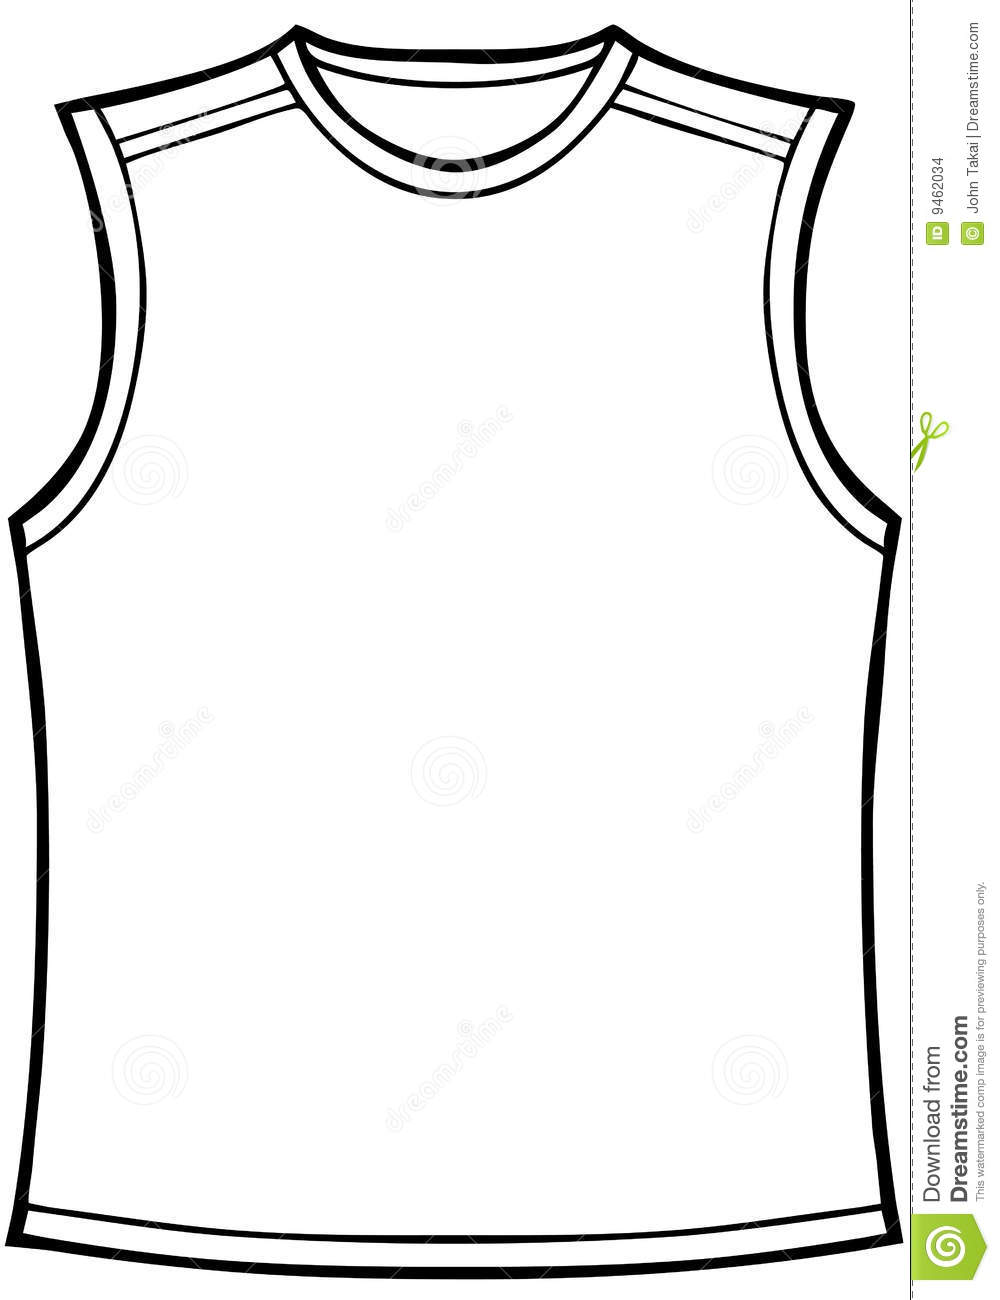 1000x1300 Basketball Jersey Clipart Many Interesting Cliparts